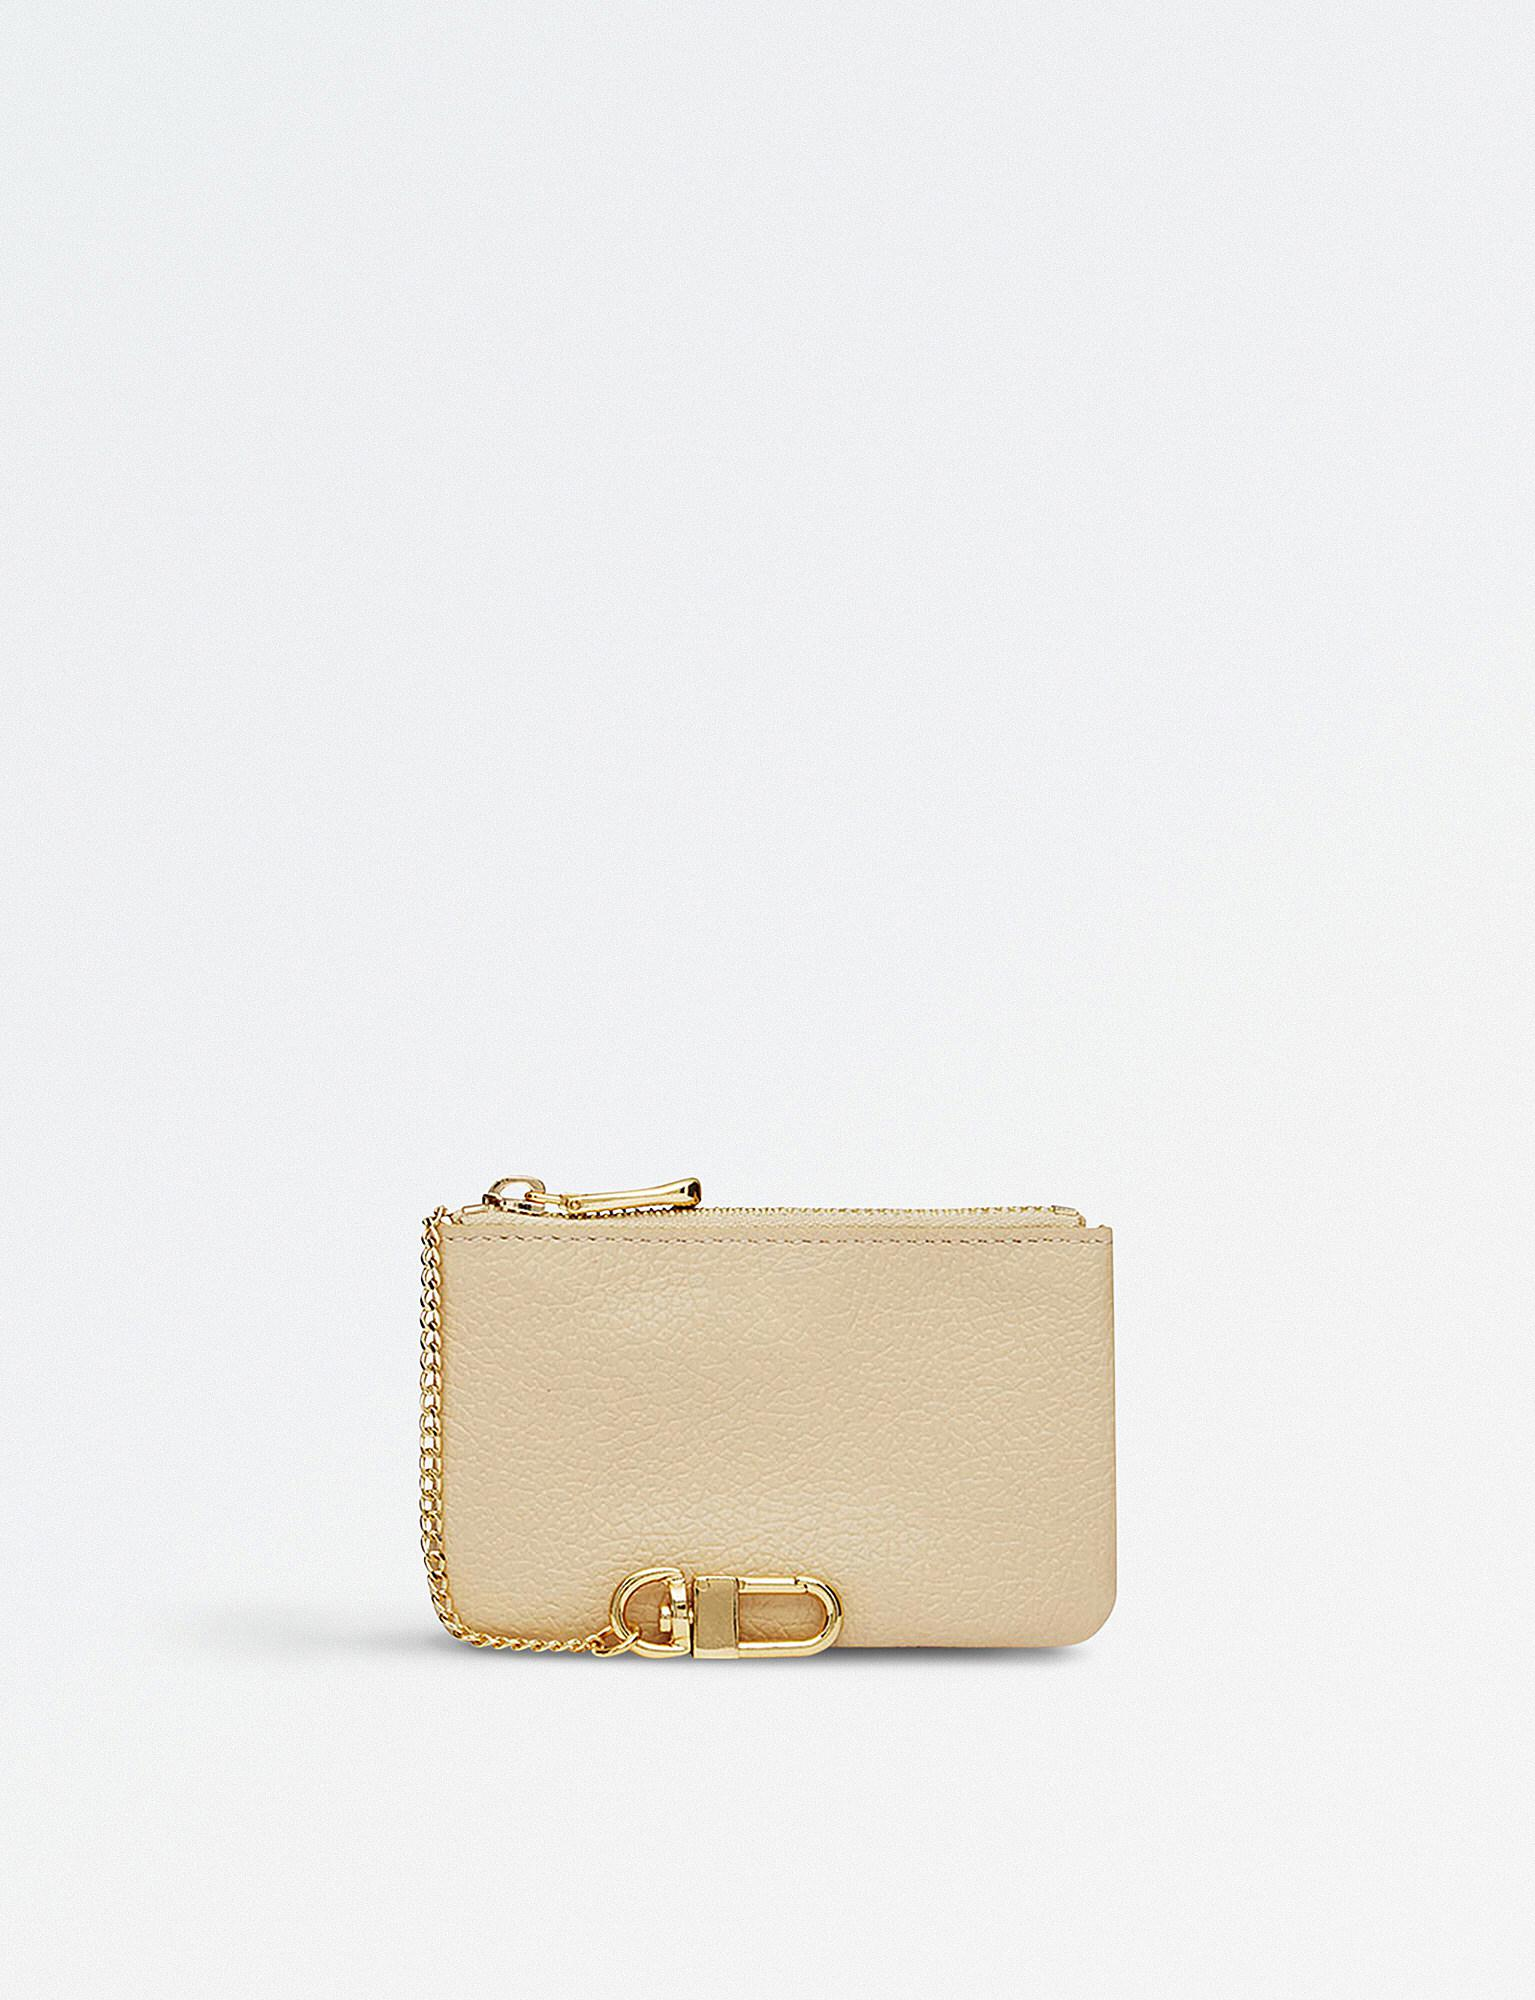 Mon Purse Grainy Leather Coin Purse in Natural - Lyst 70f85717db